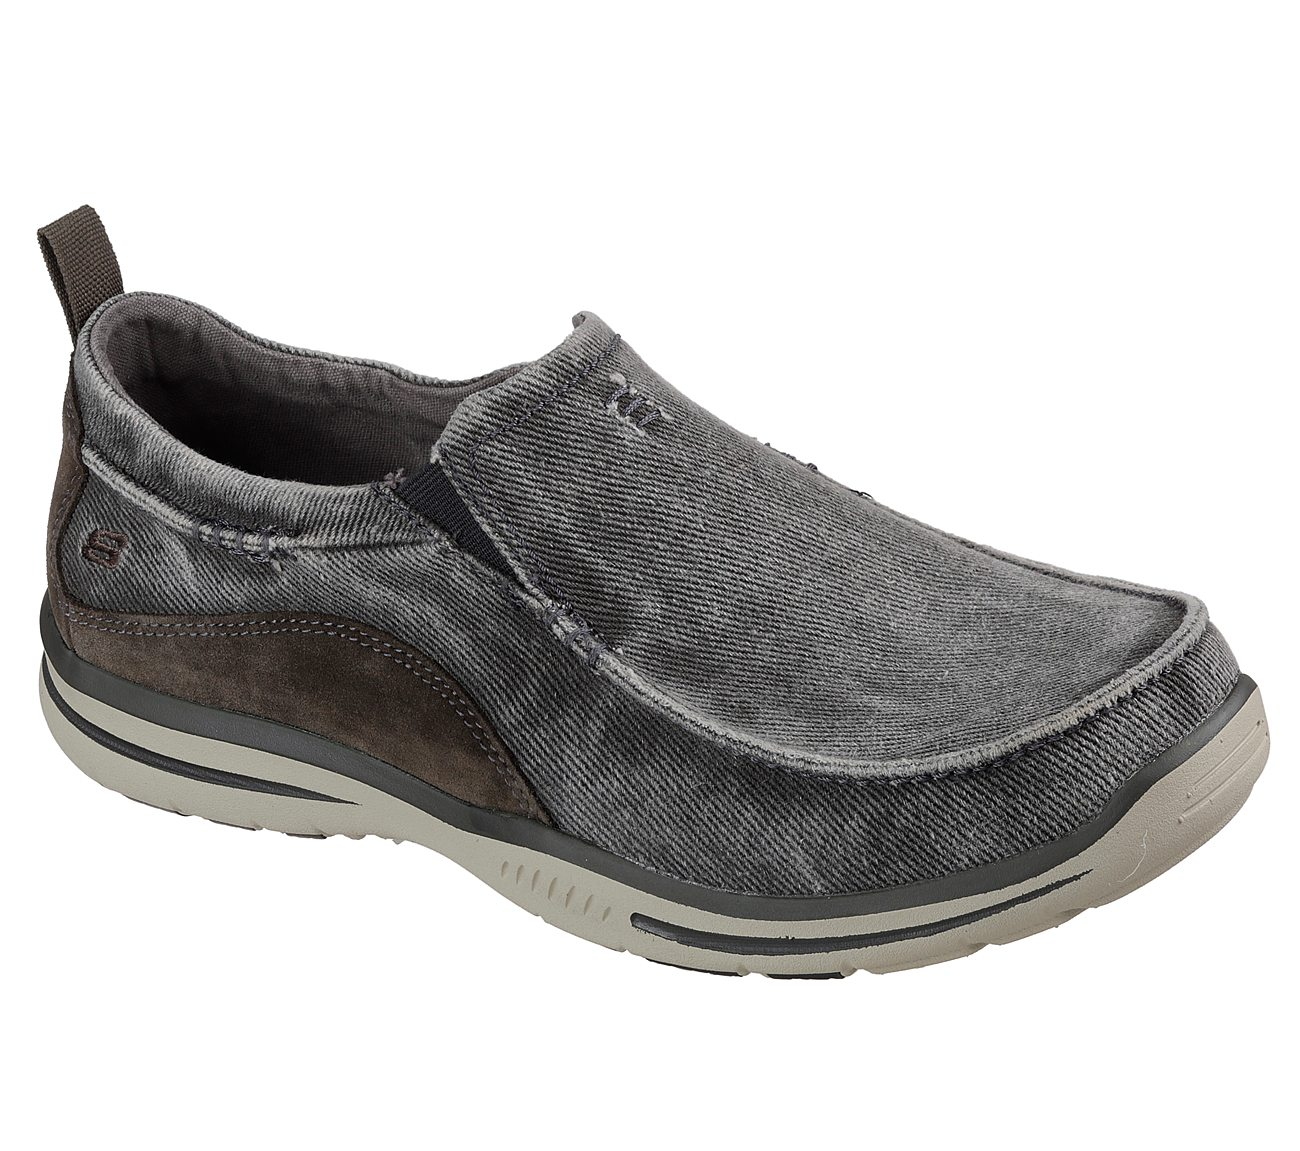 skechers relaxed fit slip on